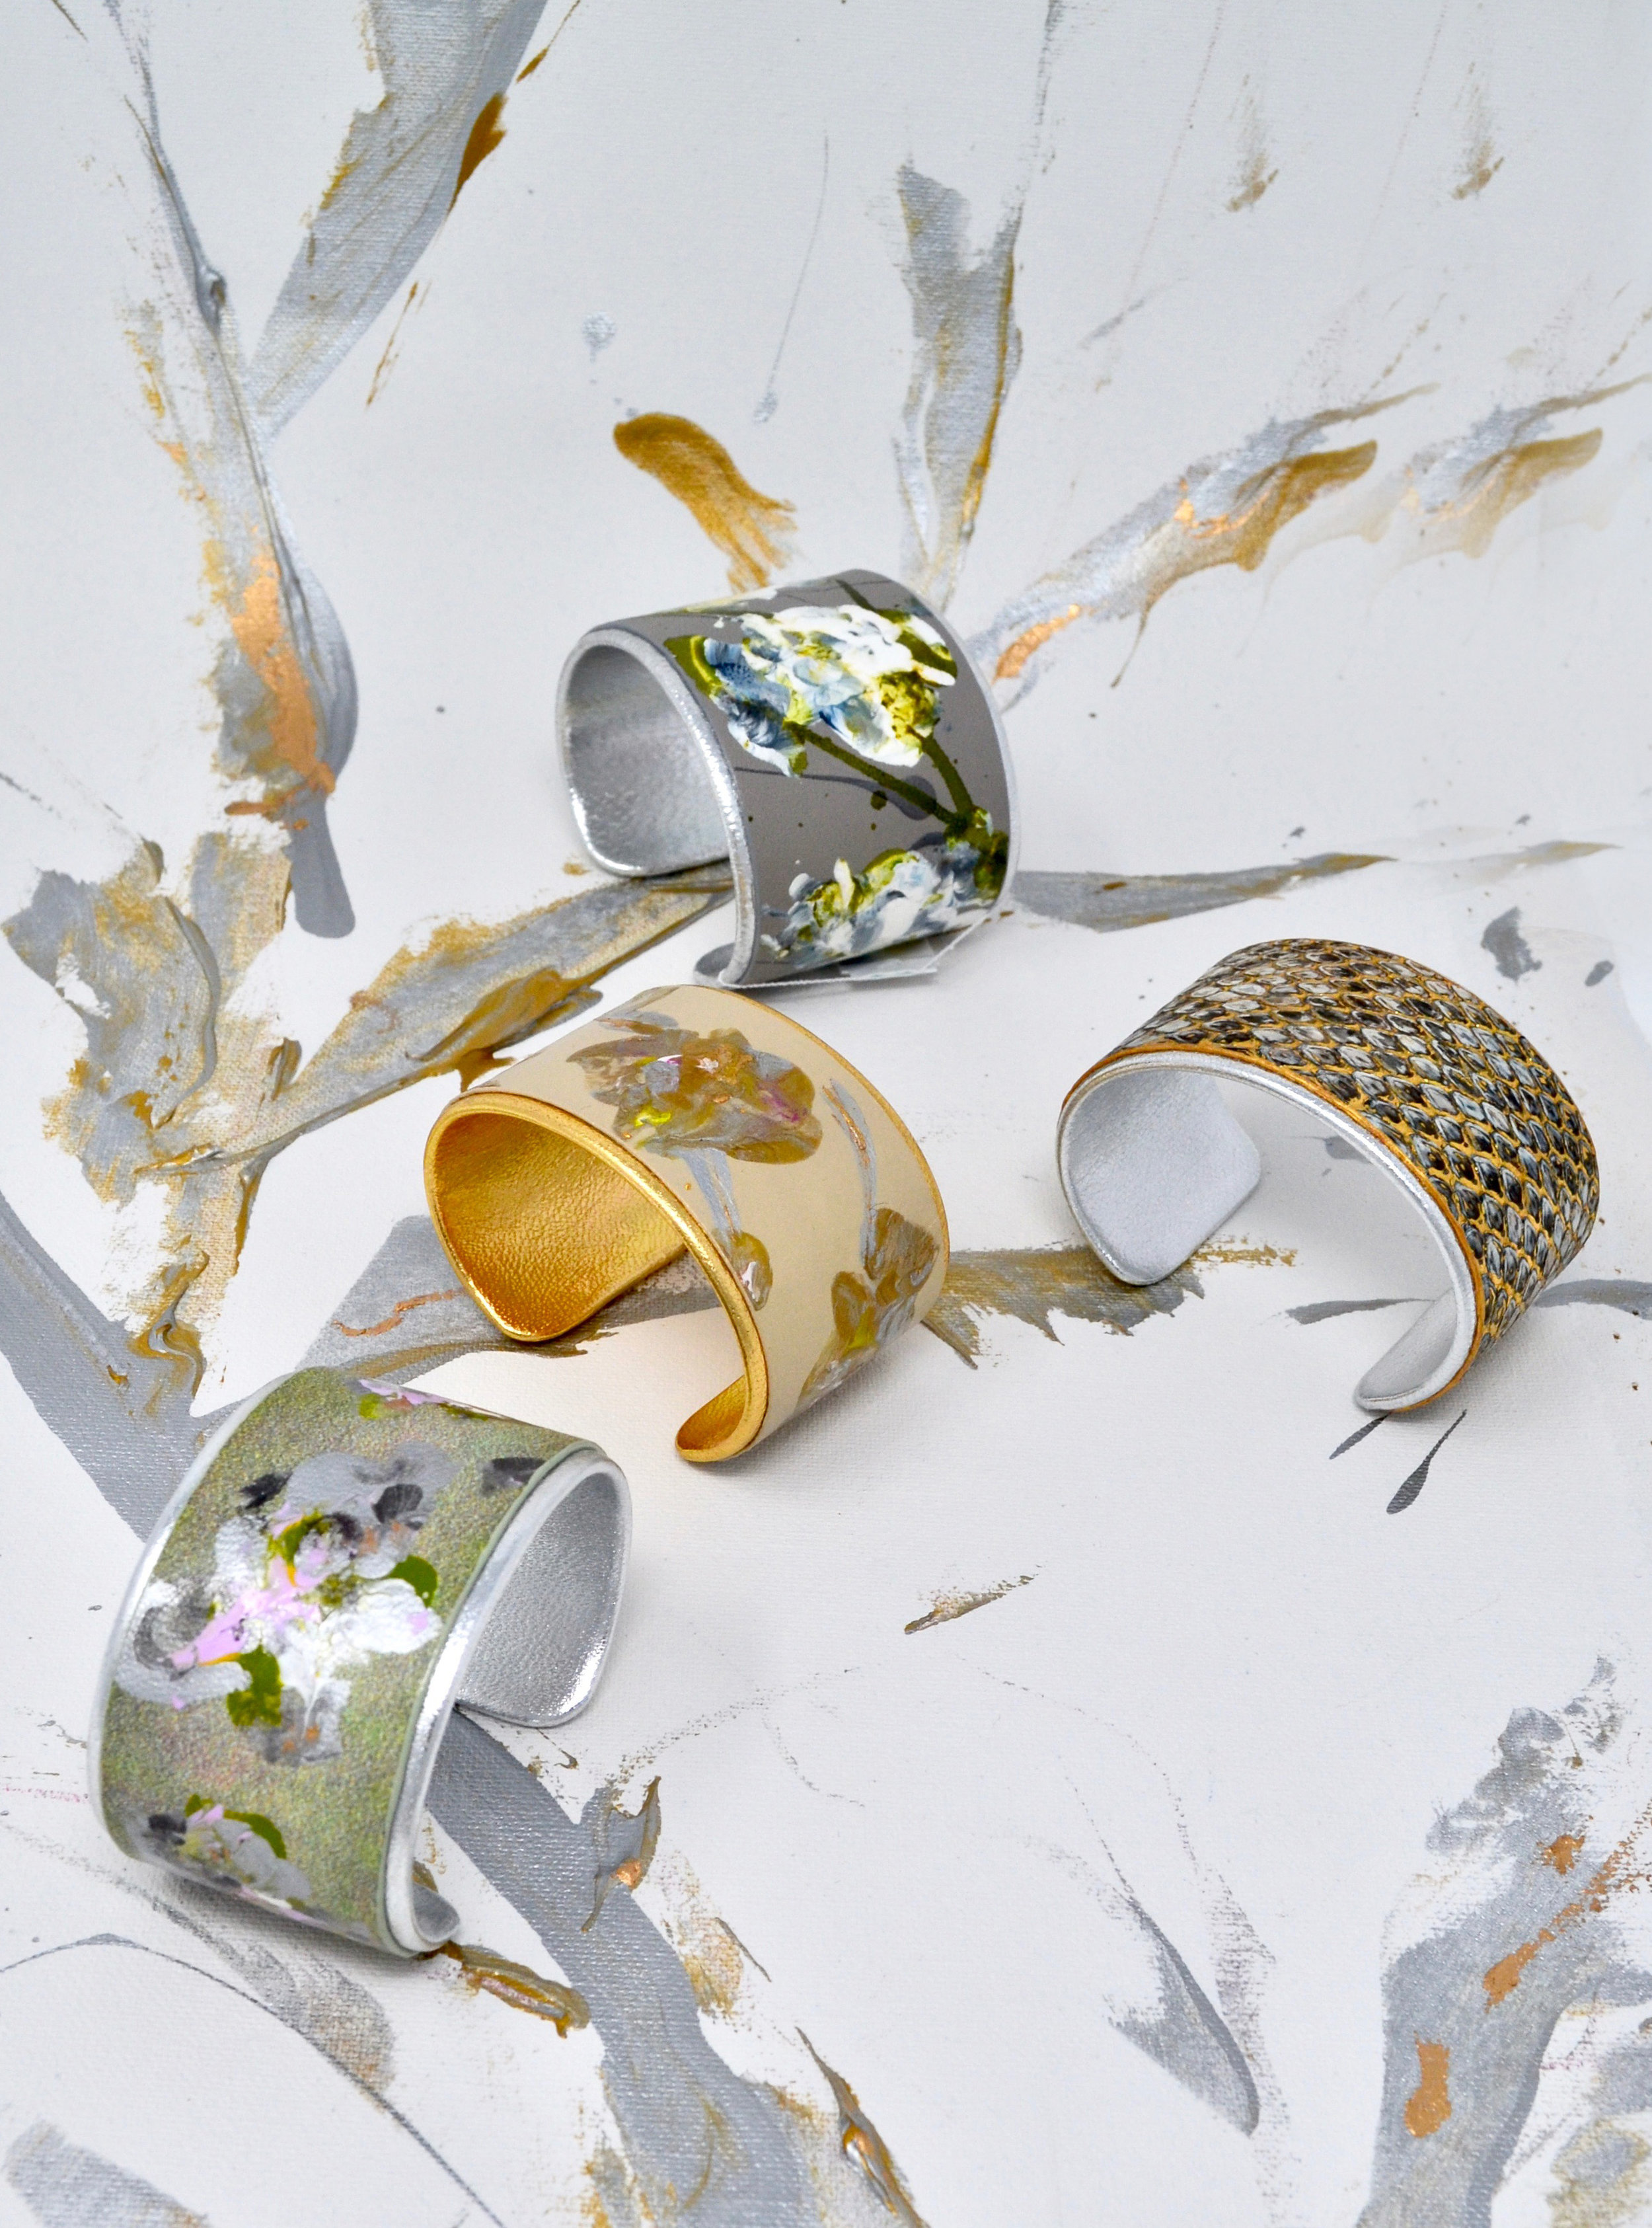 "Cuffs for a Cause: The 'Chinoiserie Chic' Collection by Liza Hathaway Matthews - By Sponsored Post Staff - June 22, 2018As Henri Matisse once wrote, ""Creativity takes courage.""Never has that been truer than in the modern commercial jewelry market, where companies mass produce focus-tested designs, trading more on off-brand cachet than artistic panache. For artisanal jewelers, finding a way to make individually handcrafted works stand out is a constant challenge to both creativity and the courage that fuels it. For Lema J Design and its signature cuff line, a powerful cause serves as inspiration for both...."